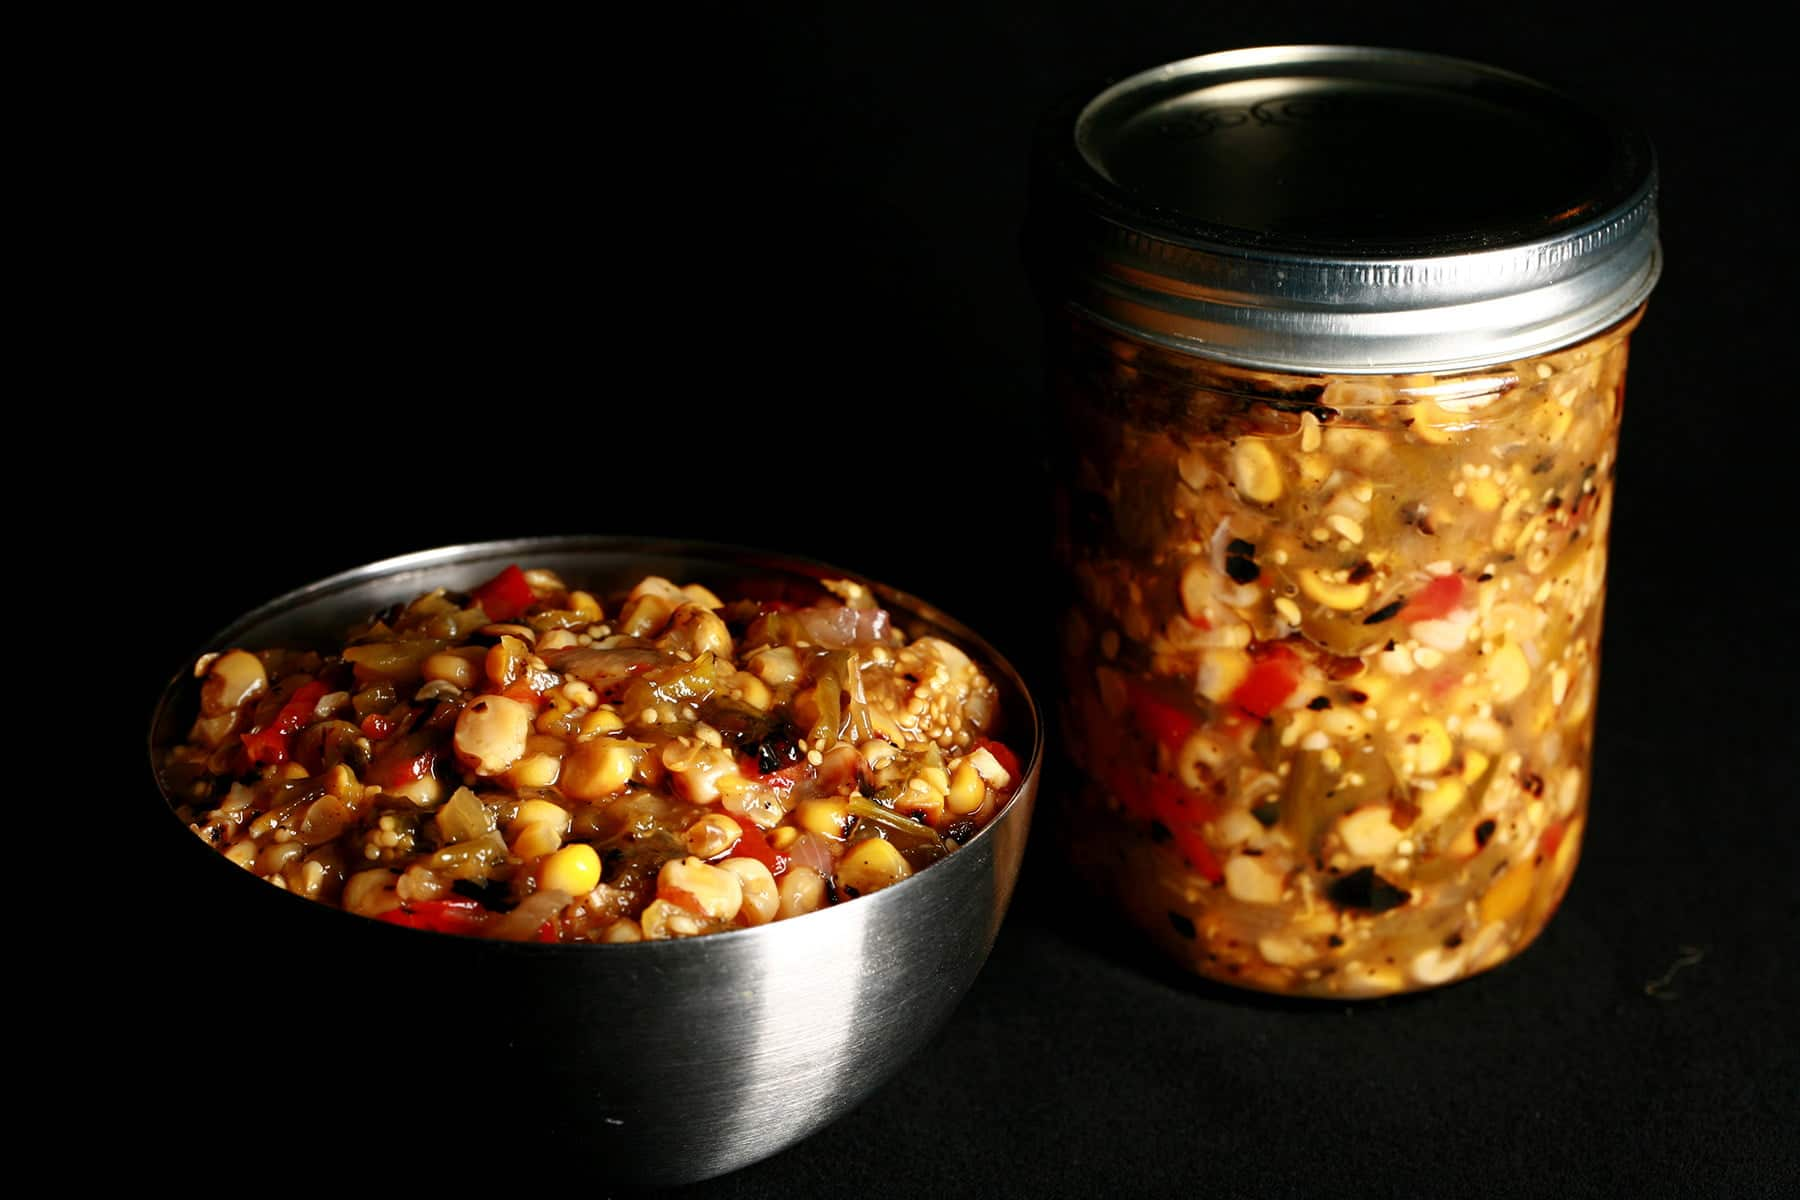 A bowl of a chunky roasted corn salsa verde - a green salsa with yellow corn and red peppers throughout. There is a jar of the same salsa behind the bowl.